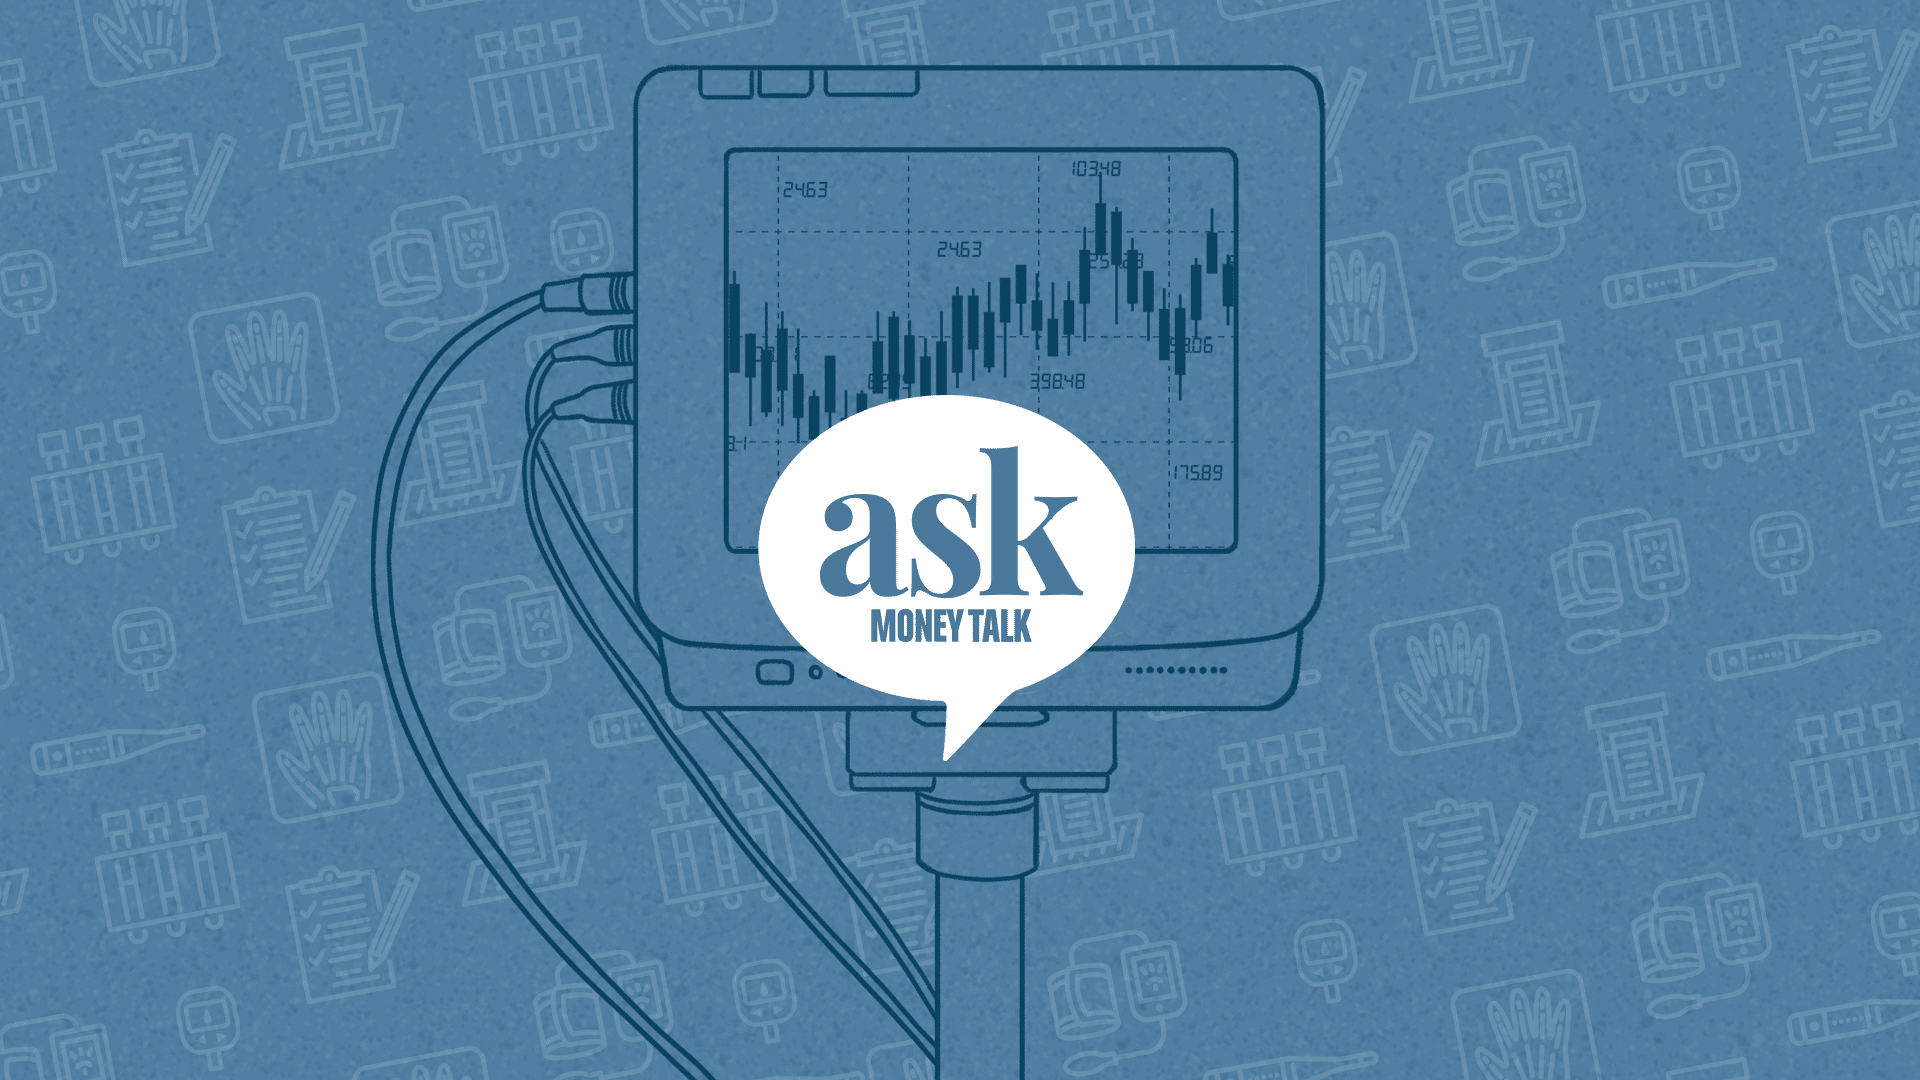 Ask MoneyTalk logo with a health monitor